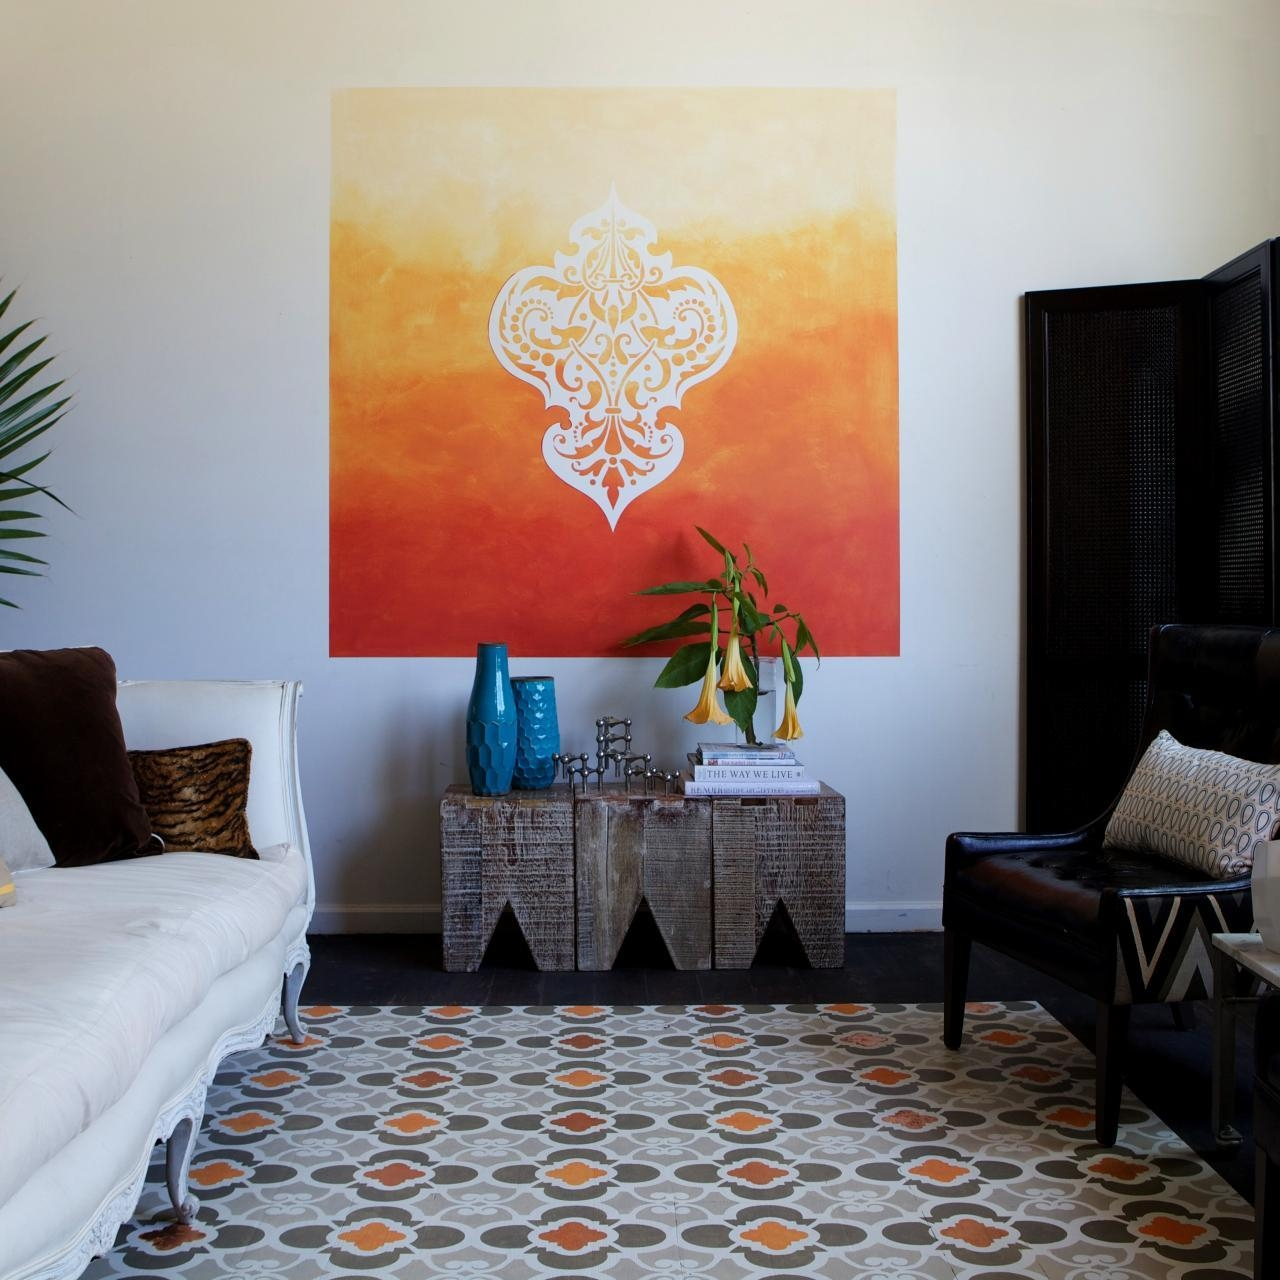 Learn How To Paint A Stenciled Ombre Wall Mural | How Tos | Diy Intended For Space Stencils For Walls (Image 19 of 20)